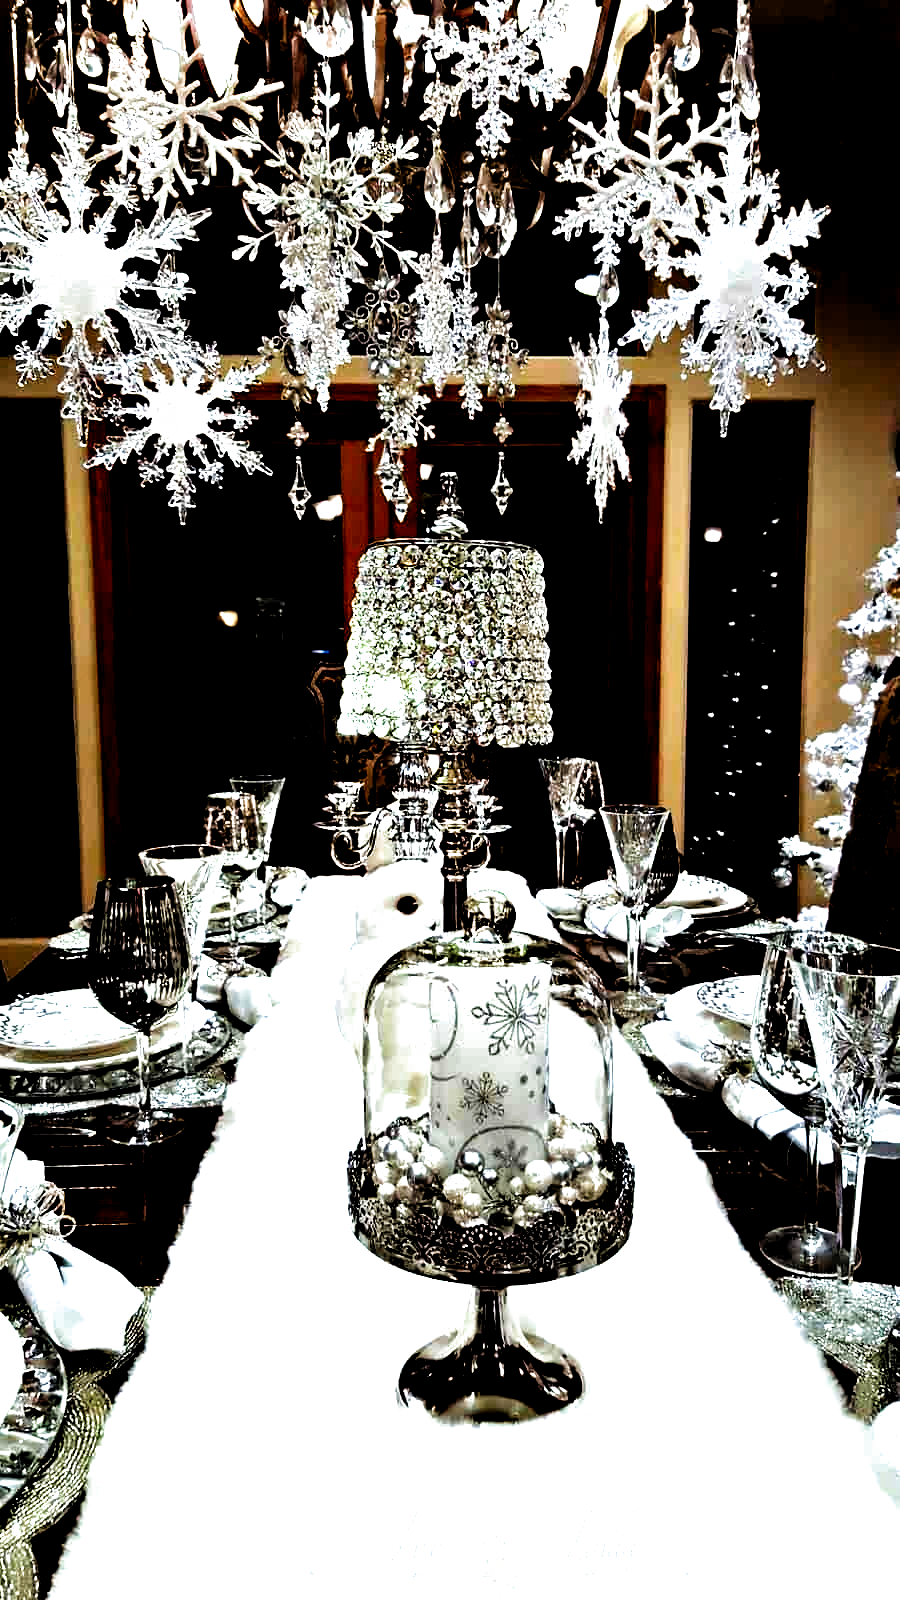 Easy DIY hanging snowflake winter decor idea using dollar store snowflakes and ribbon. This would be elegant as a Christmas decoration or at a winter wedding. A lot of great budget decor ideas for the home, winter wedding, or Christmas party. #ChristmasDecorationIdeas #Christmas #wedding #ChristmasParty #christmasdecordiy